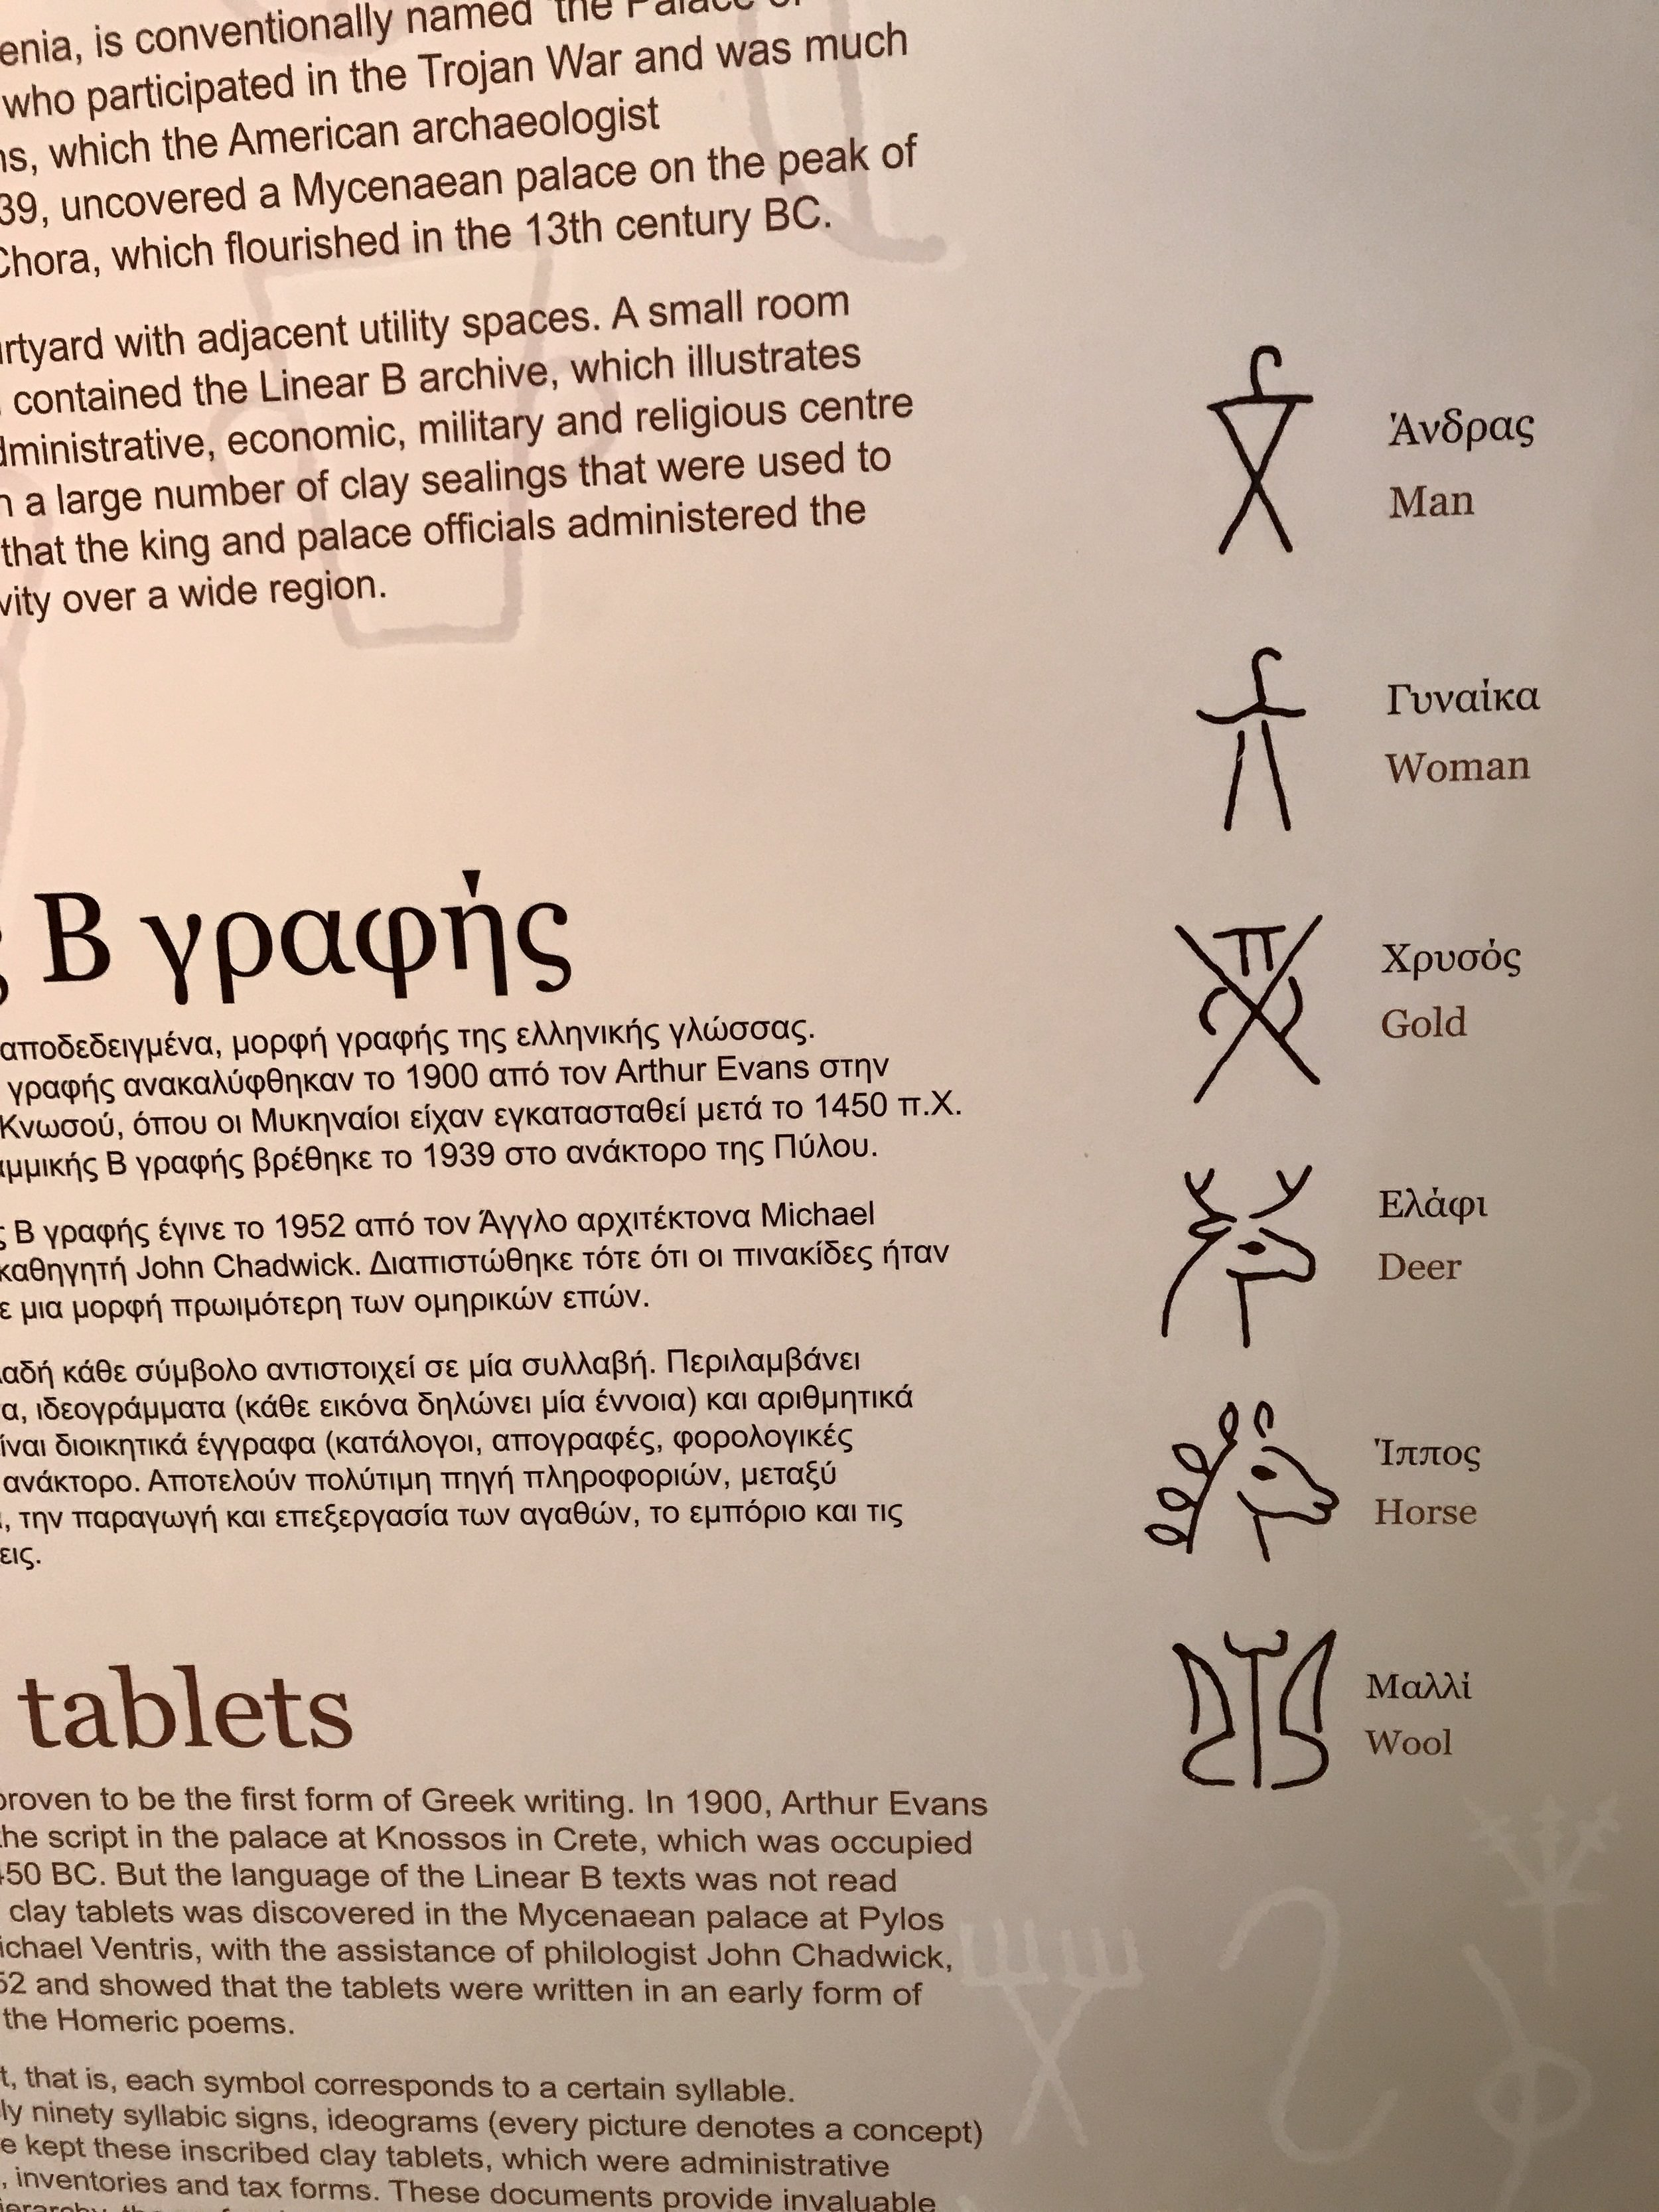 Symbols in earliest languages, some charming, some hard to understand.